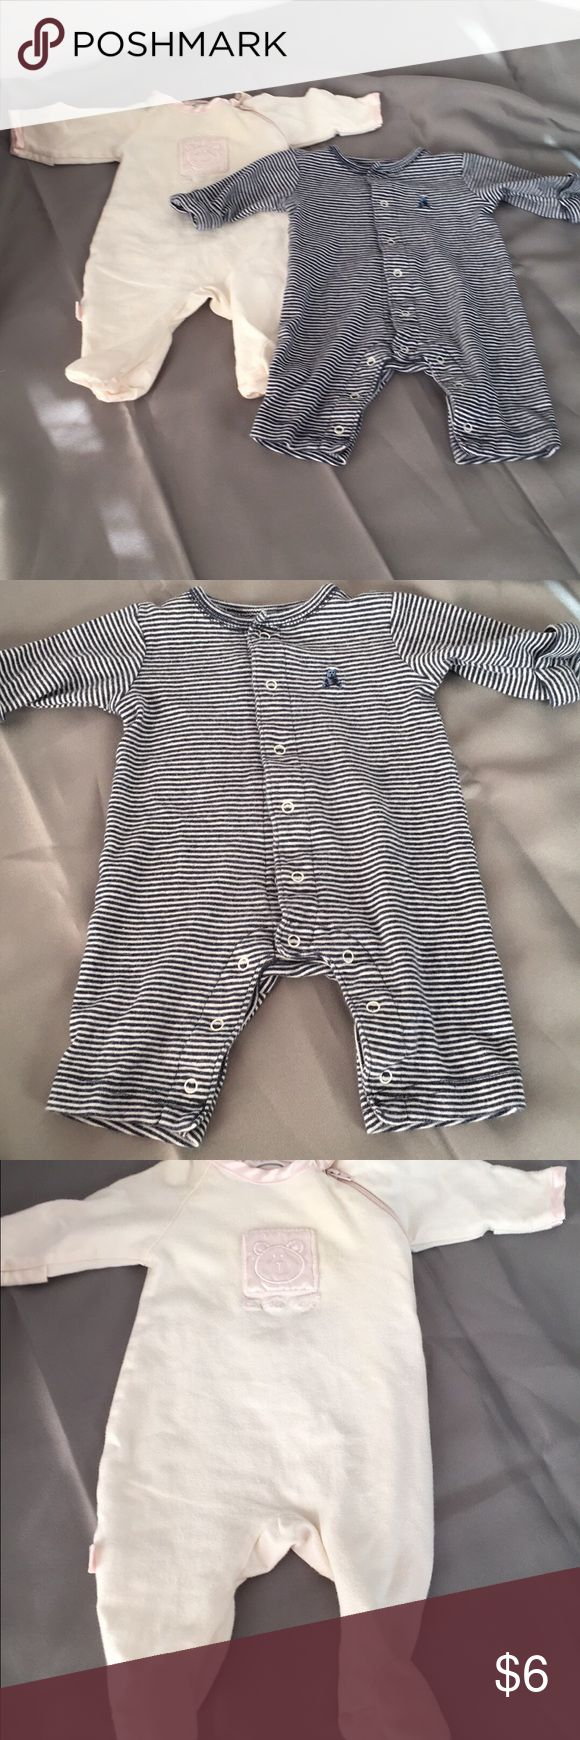 FREE w/ any 0-3 bundle - 2 Preemie Pajamas 2 Preemie pajamas. Free with any 0-3 month bundle. The off white one has a stain that is very faint. Please see pic. I understand preemies grow fast and these pjs will be out grown fast. That is why I'm hoping to bundle them for someone. The fit up to 7 lbs. Baby Gap and Kushies Baby One Pieces Bodysuits